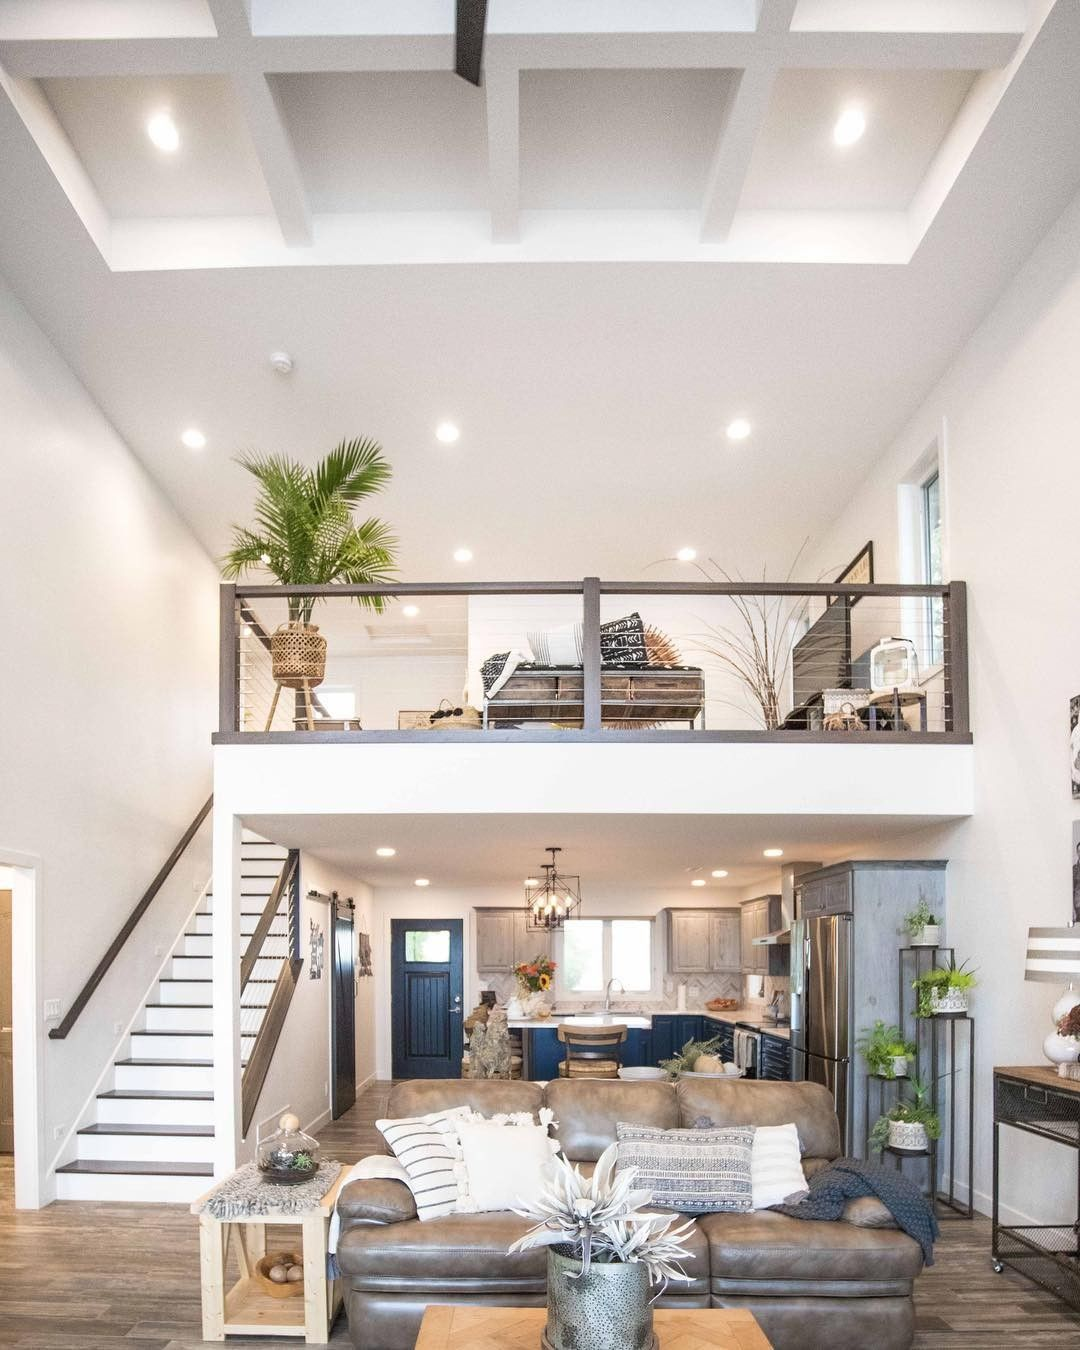 Downleahslane Posted To Instagram Give Me A Loft An Open Floor Plan And Big Windows With Modern House Plans Open Floor Open Plan Apartment Open House Plans